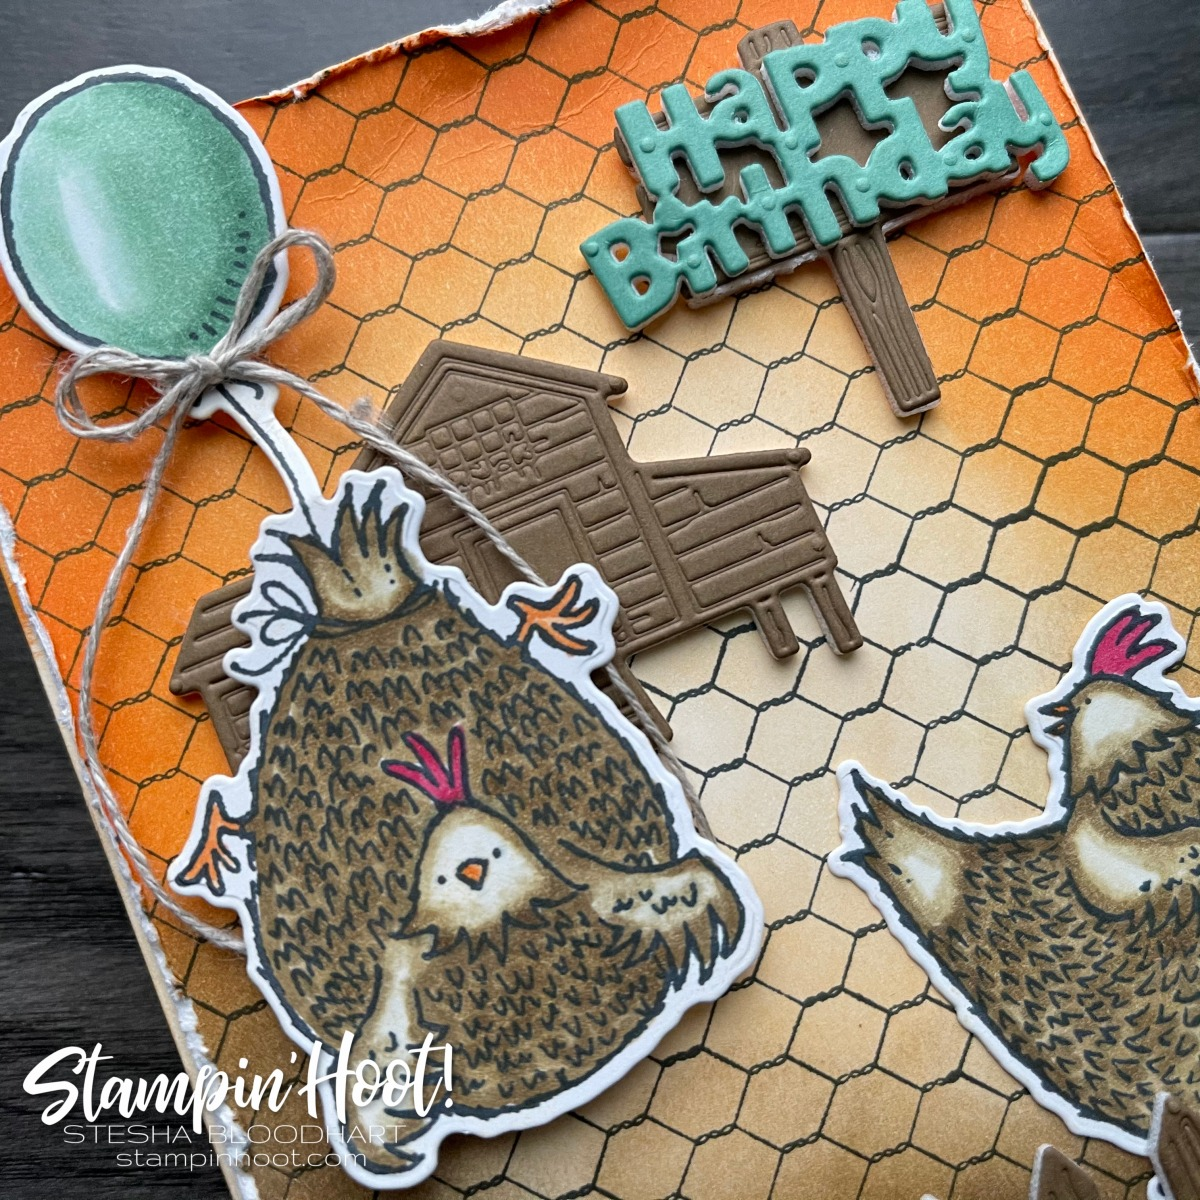 Hey Chick and Hey Birthday Chick Bundles From Stampin' Up! #tgifc299 Background Stamp Challenge (2)